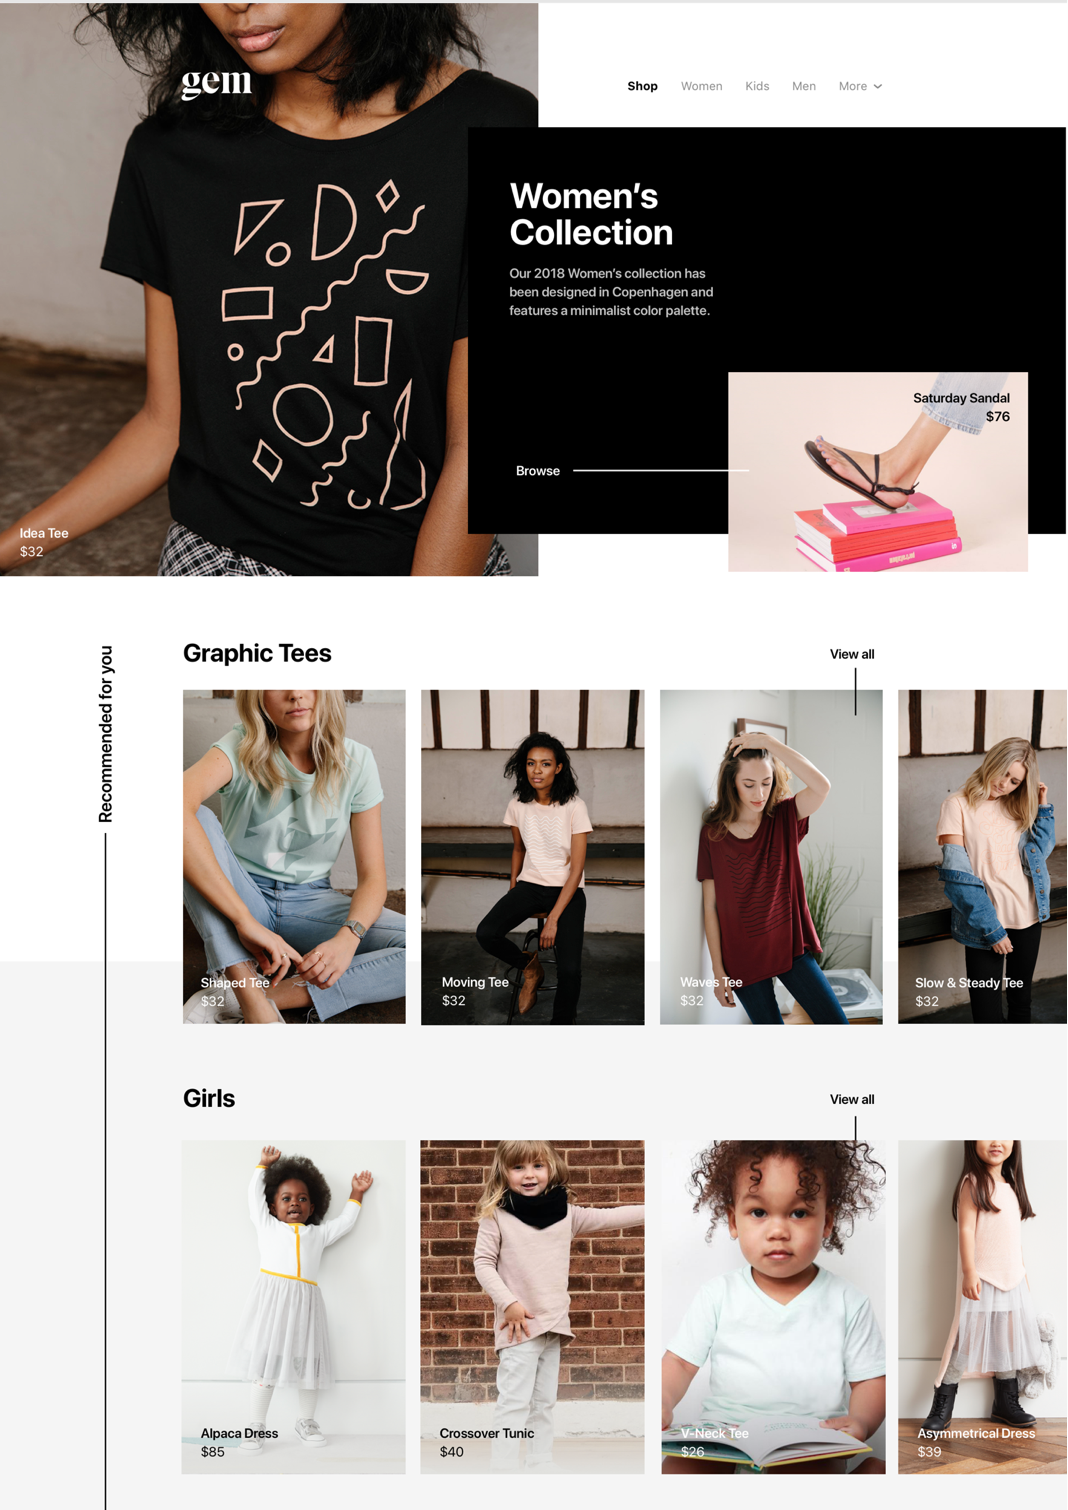 ac96da67f The Ecommerce Fashion Industry  Statistics